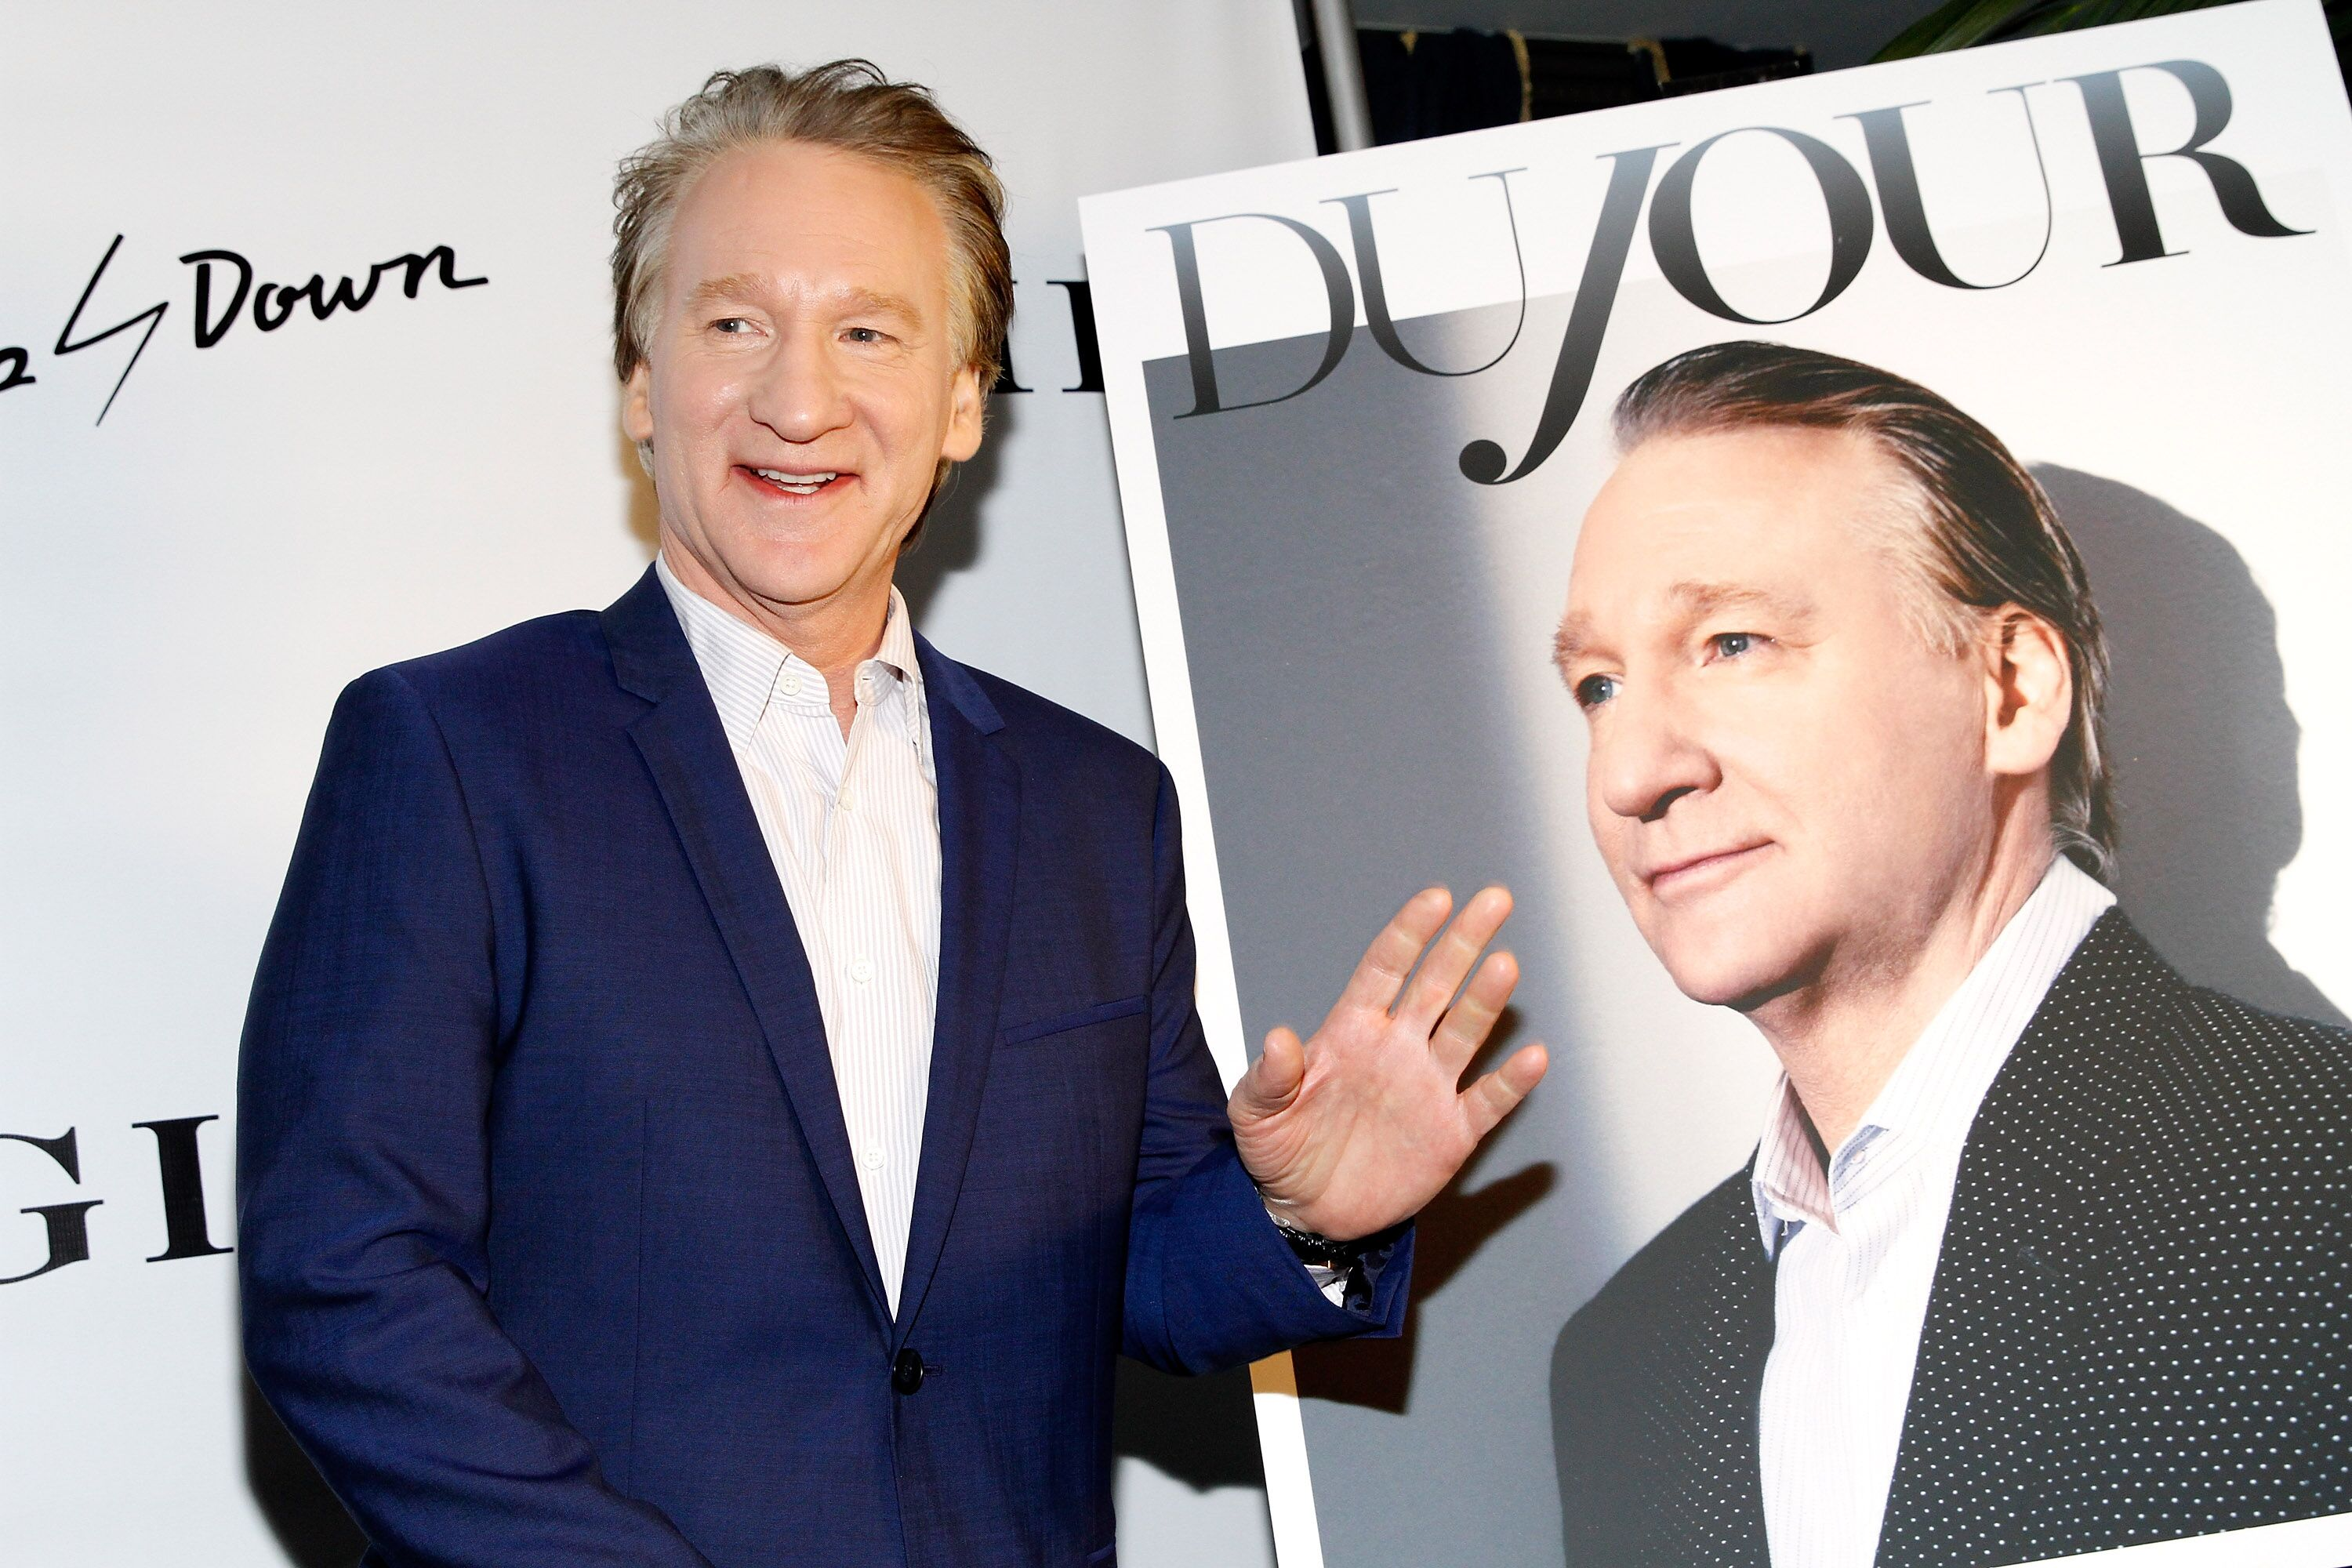 Is Real Time with Bill Maher new tonight, July 19?